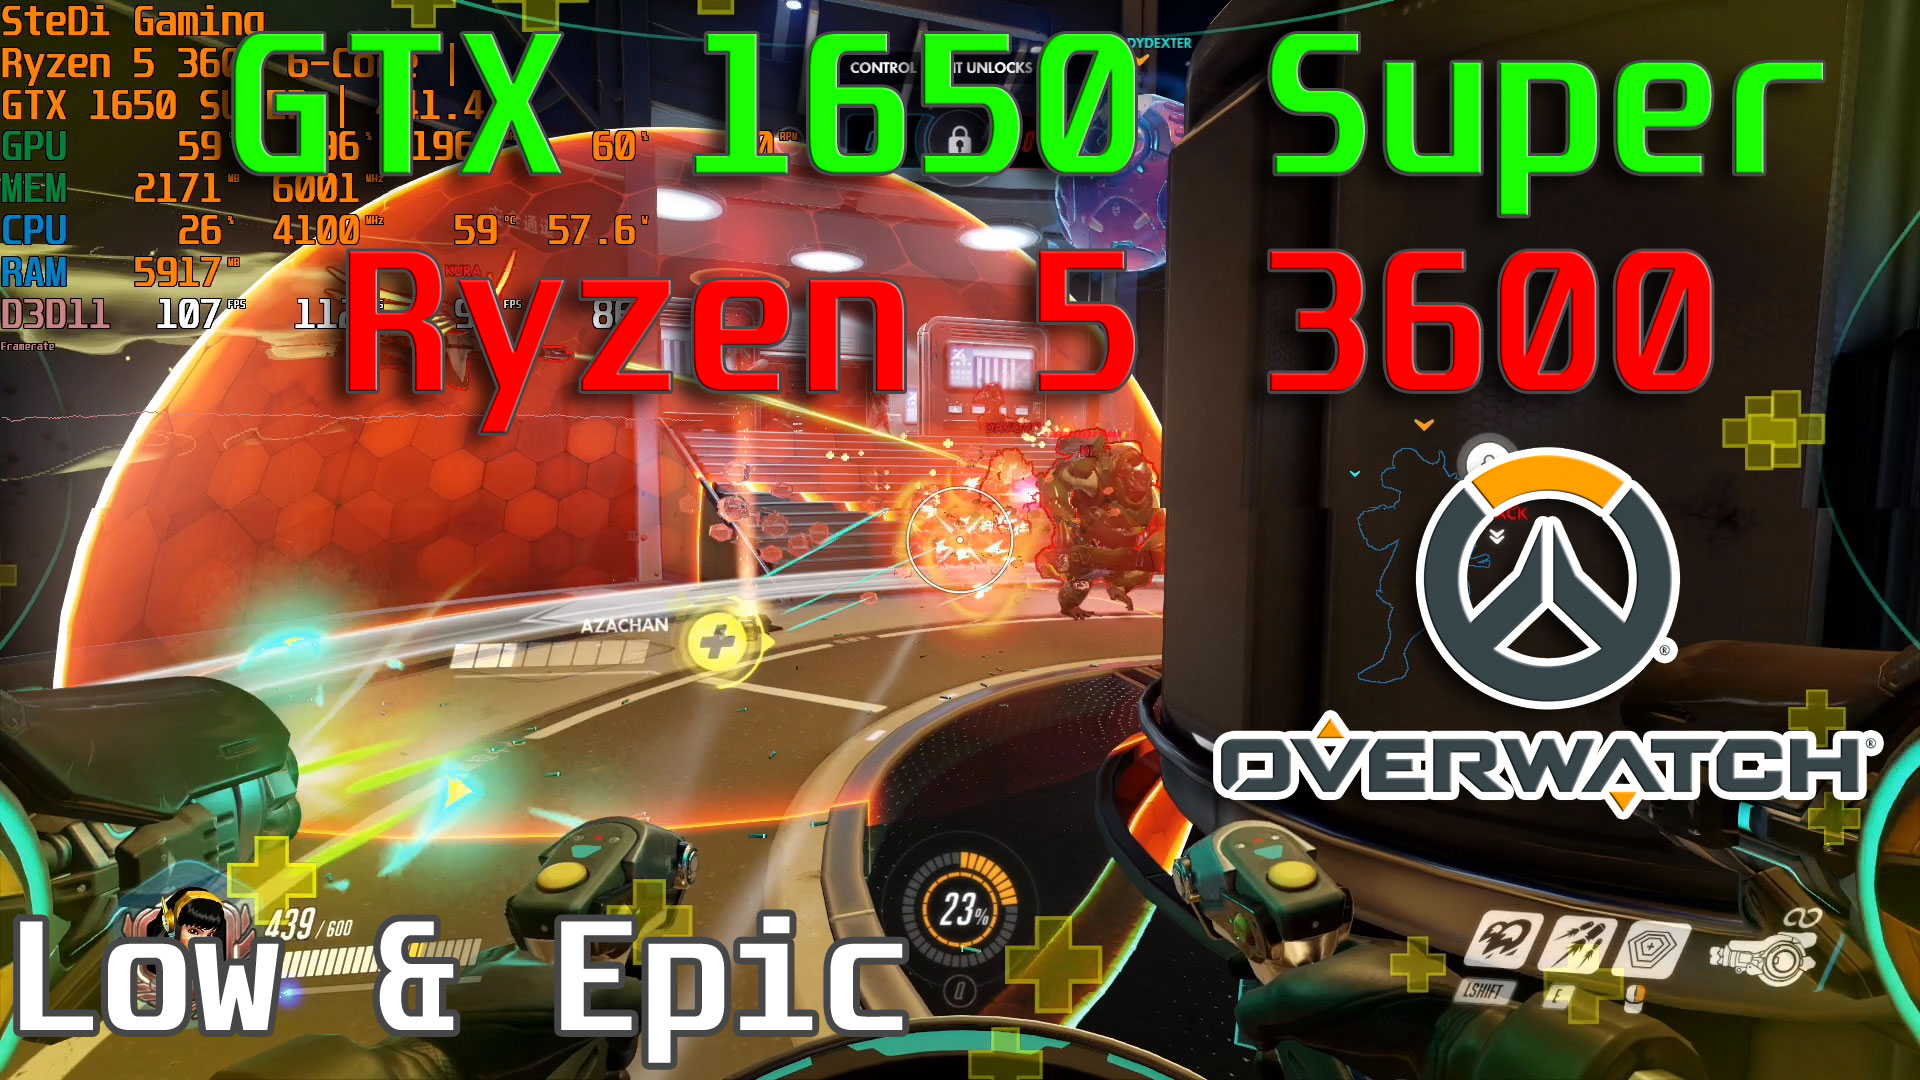 GTX 1650 Super: Overwatch Low Epic With Ryzen 5 3600